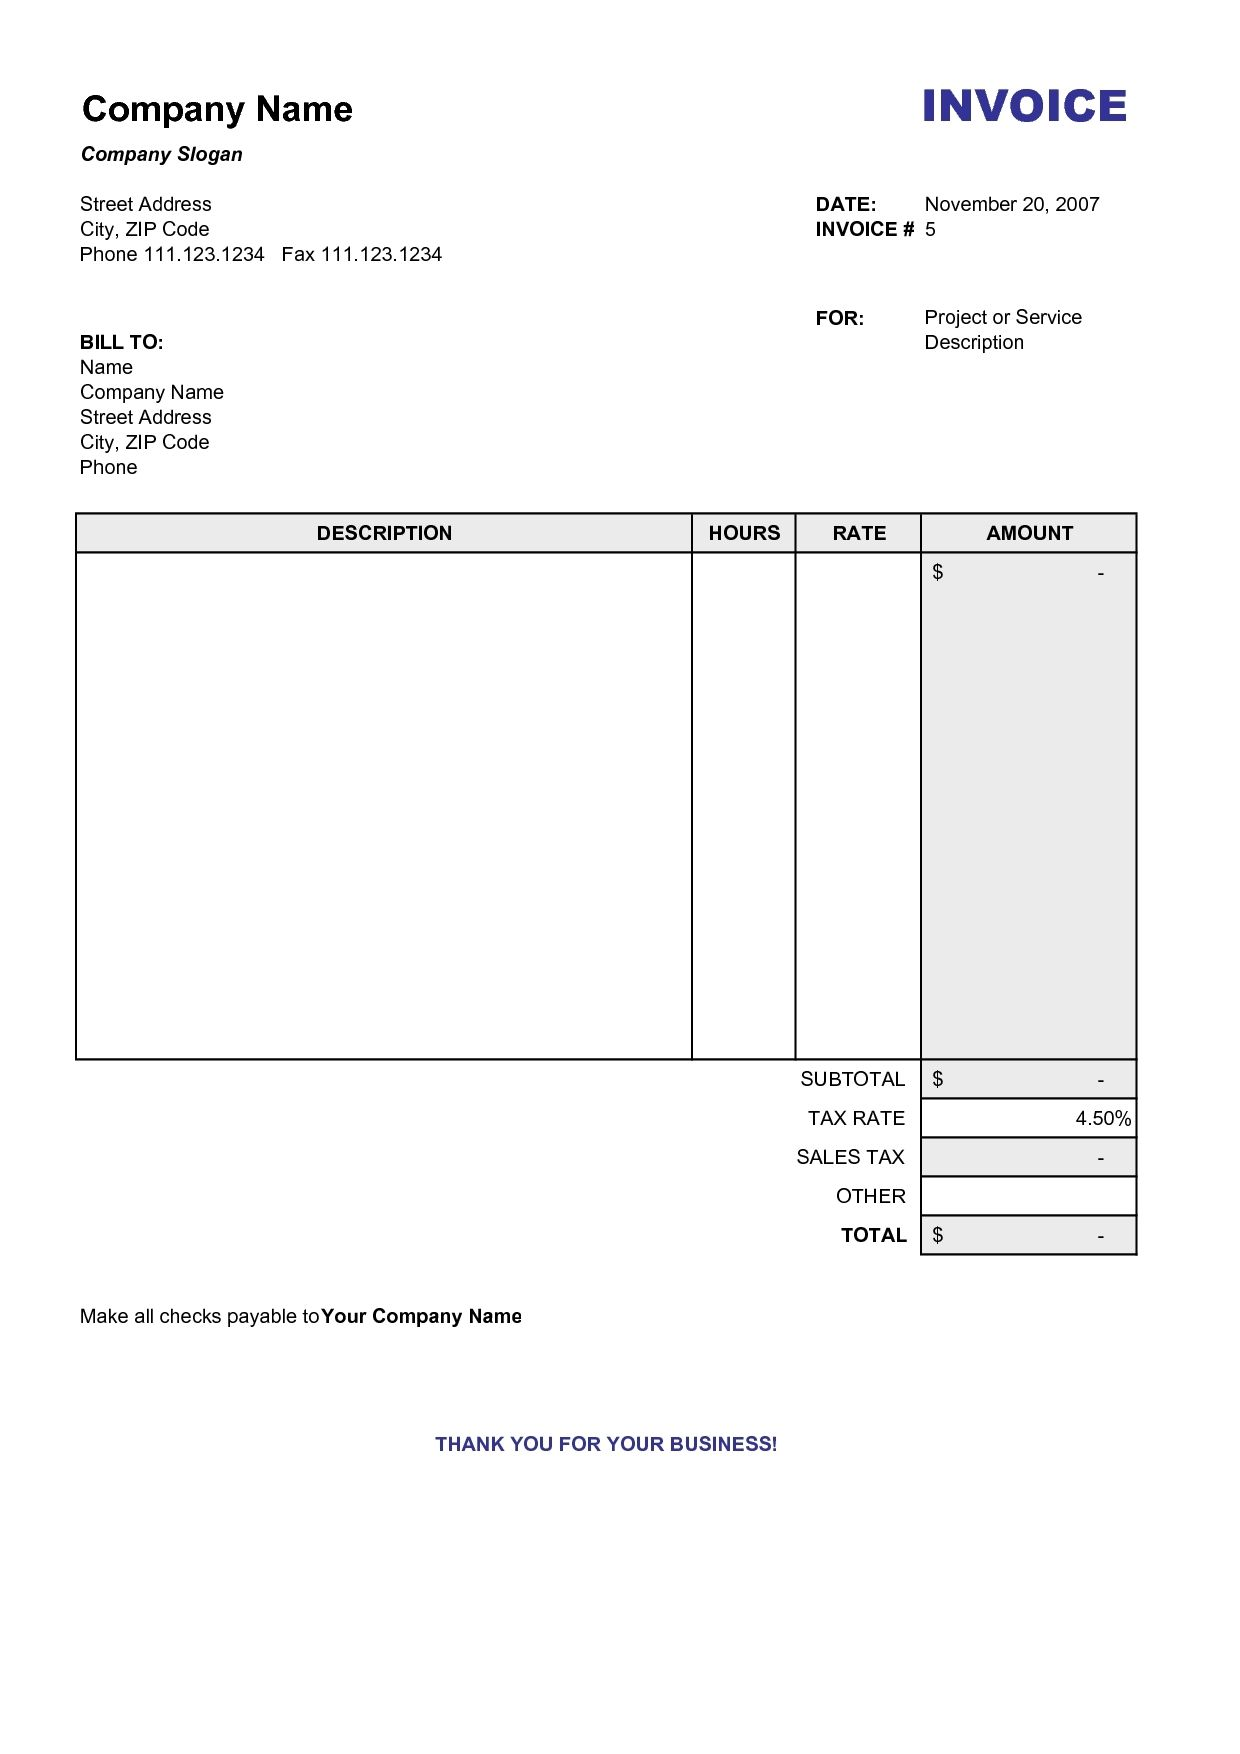 copy of a blank invoice invoice template copy of blank copy of a blank invoice invoice template 2016 copy of blank invoice